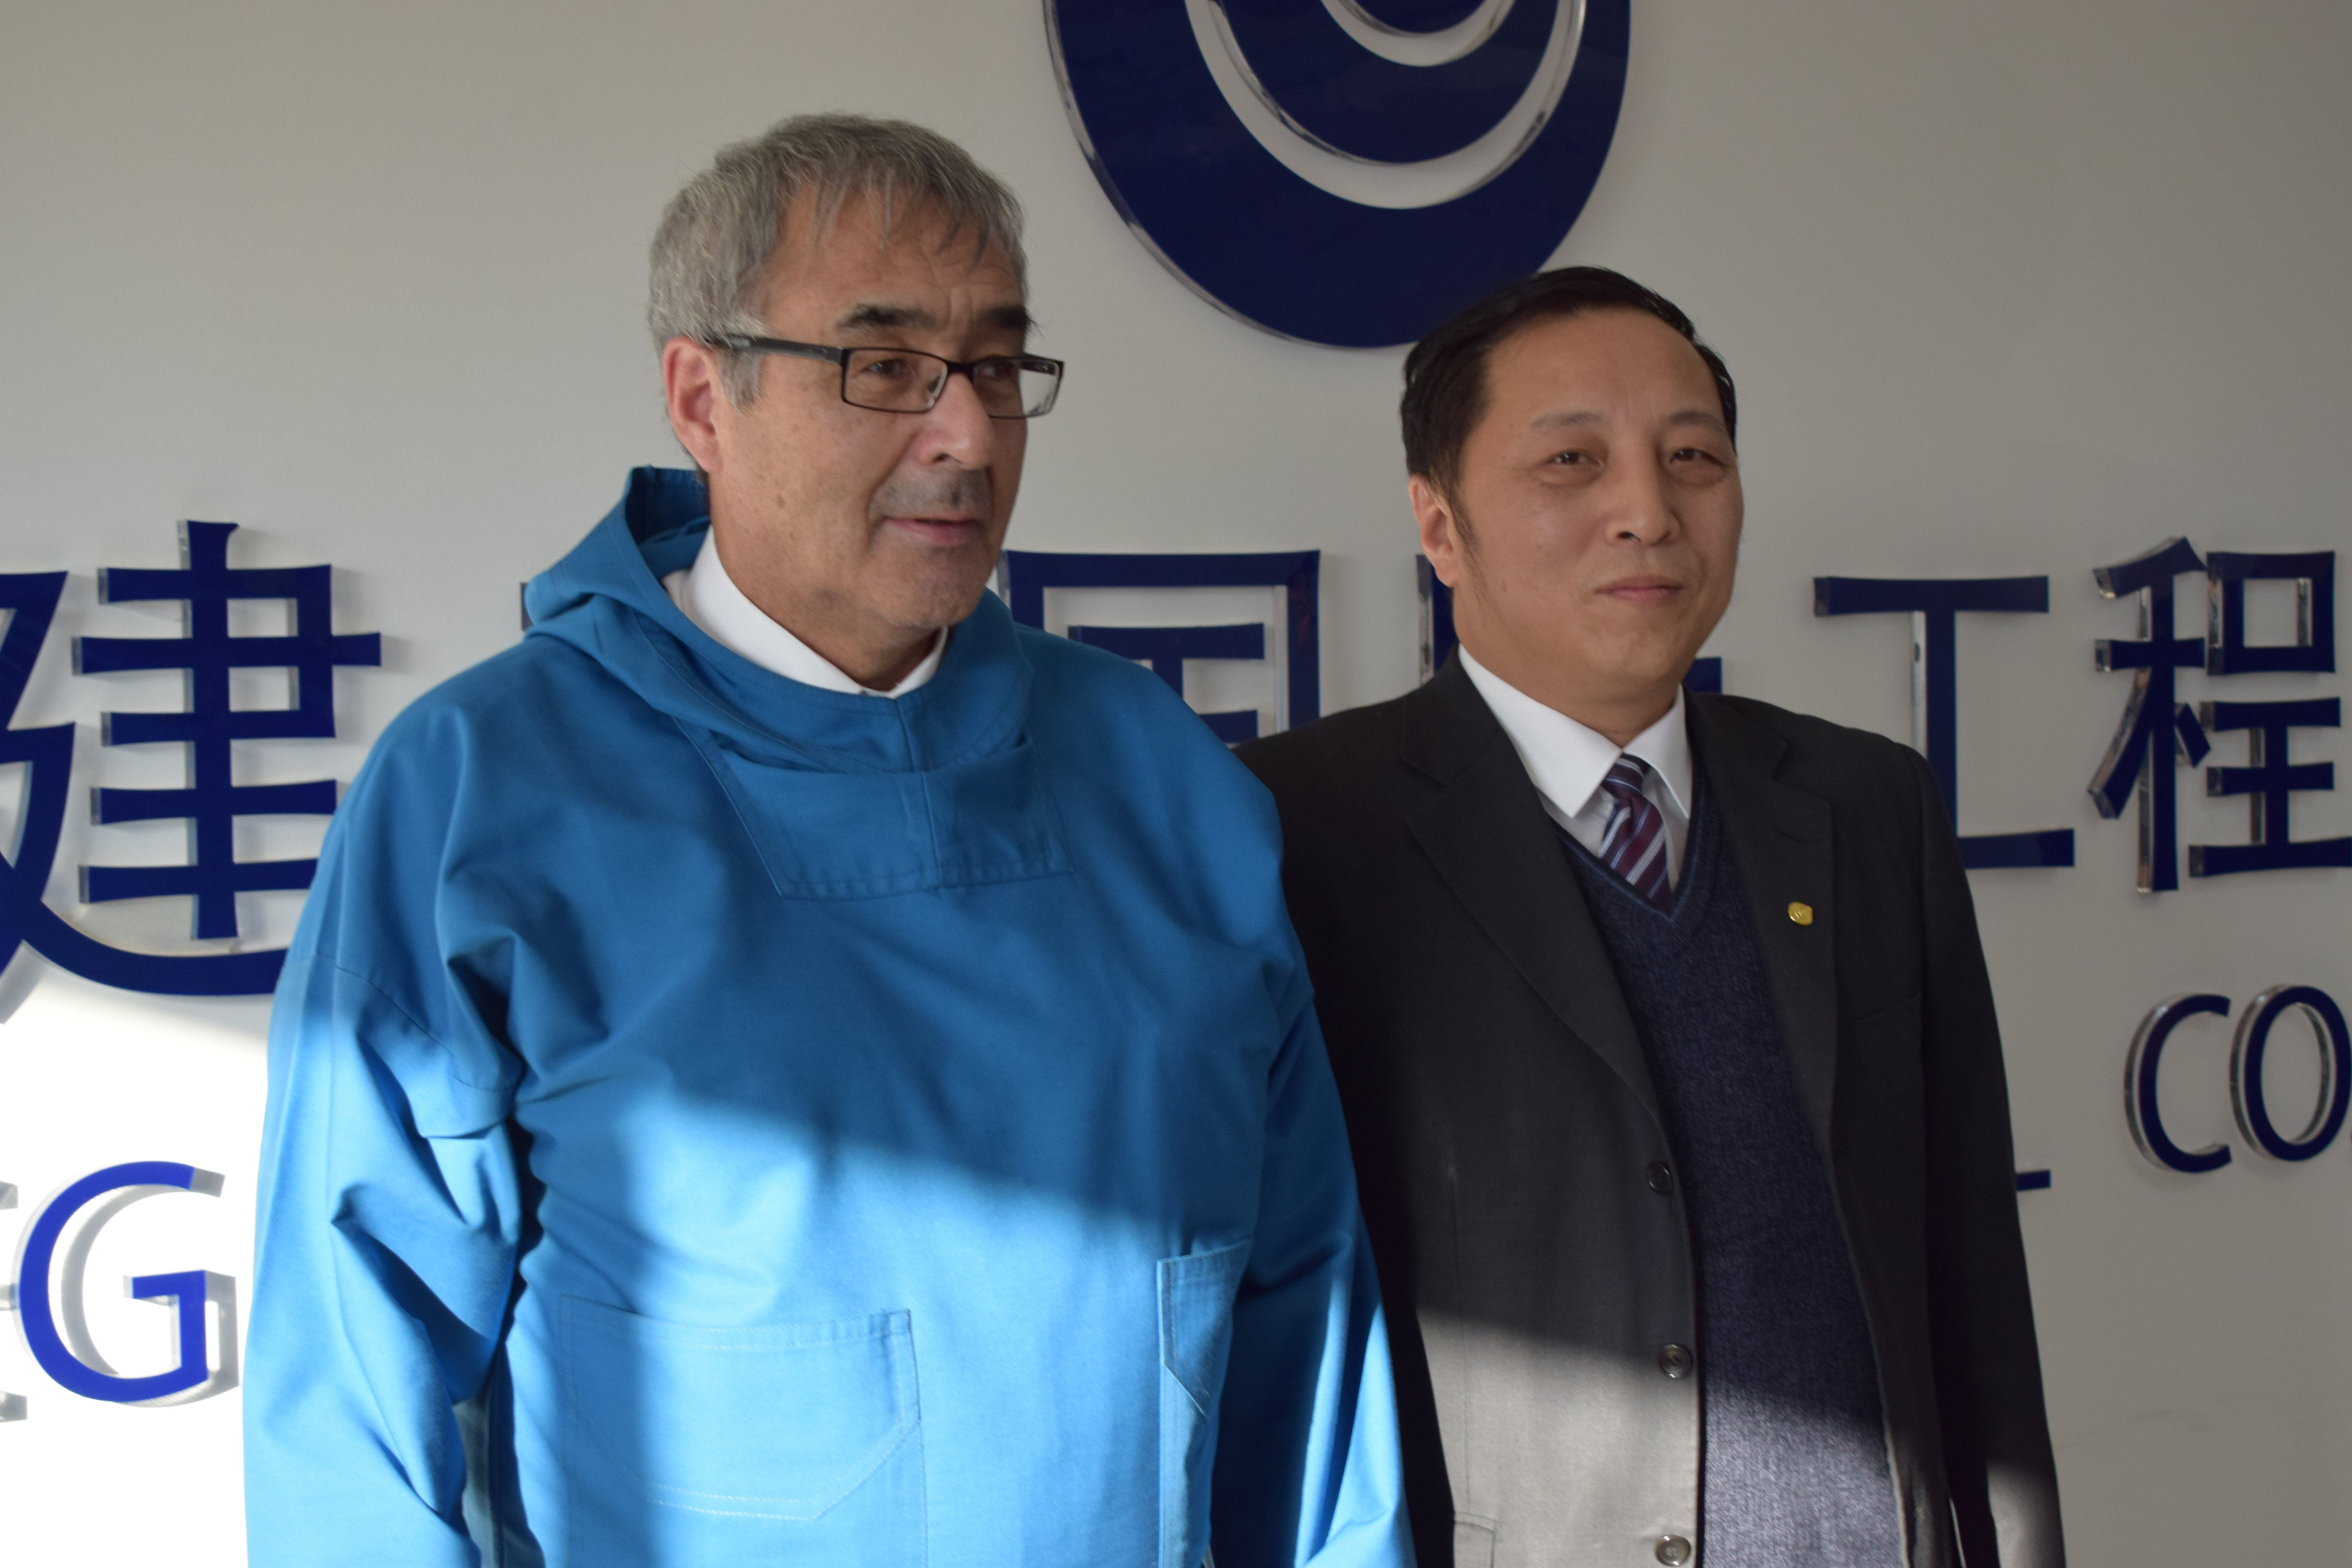 In China, Greenland's commerce minister Hans Enkosen (left) has held a series of meetings with banks and construction firms in an effort to attract investment in the country's plans to build new airports. Here, he is pictured with Wu Junxi of the Beijing Construction Engineering Group, one of the world's largest airport construction firms (Naalakkersuisut)